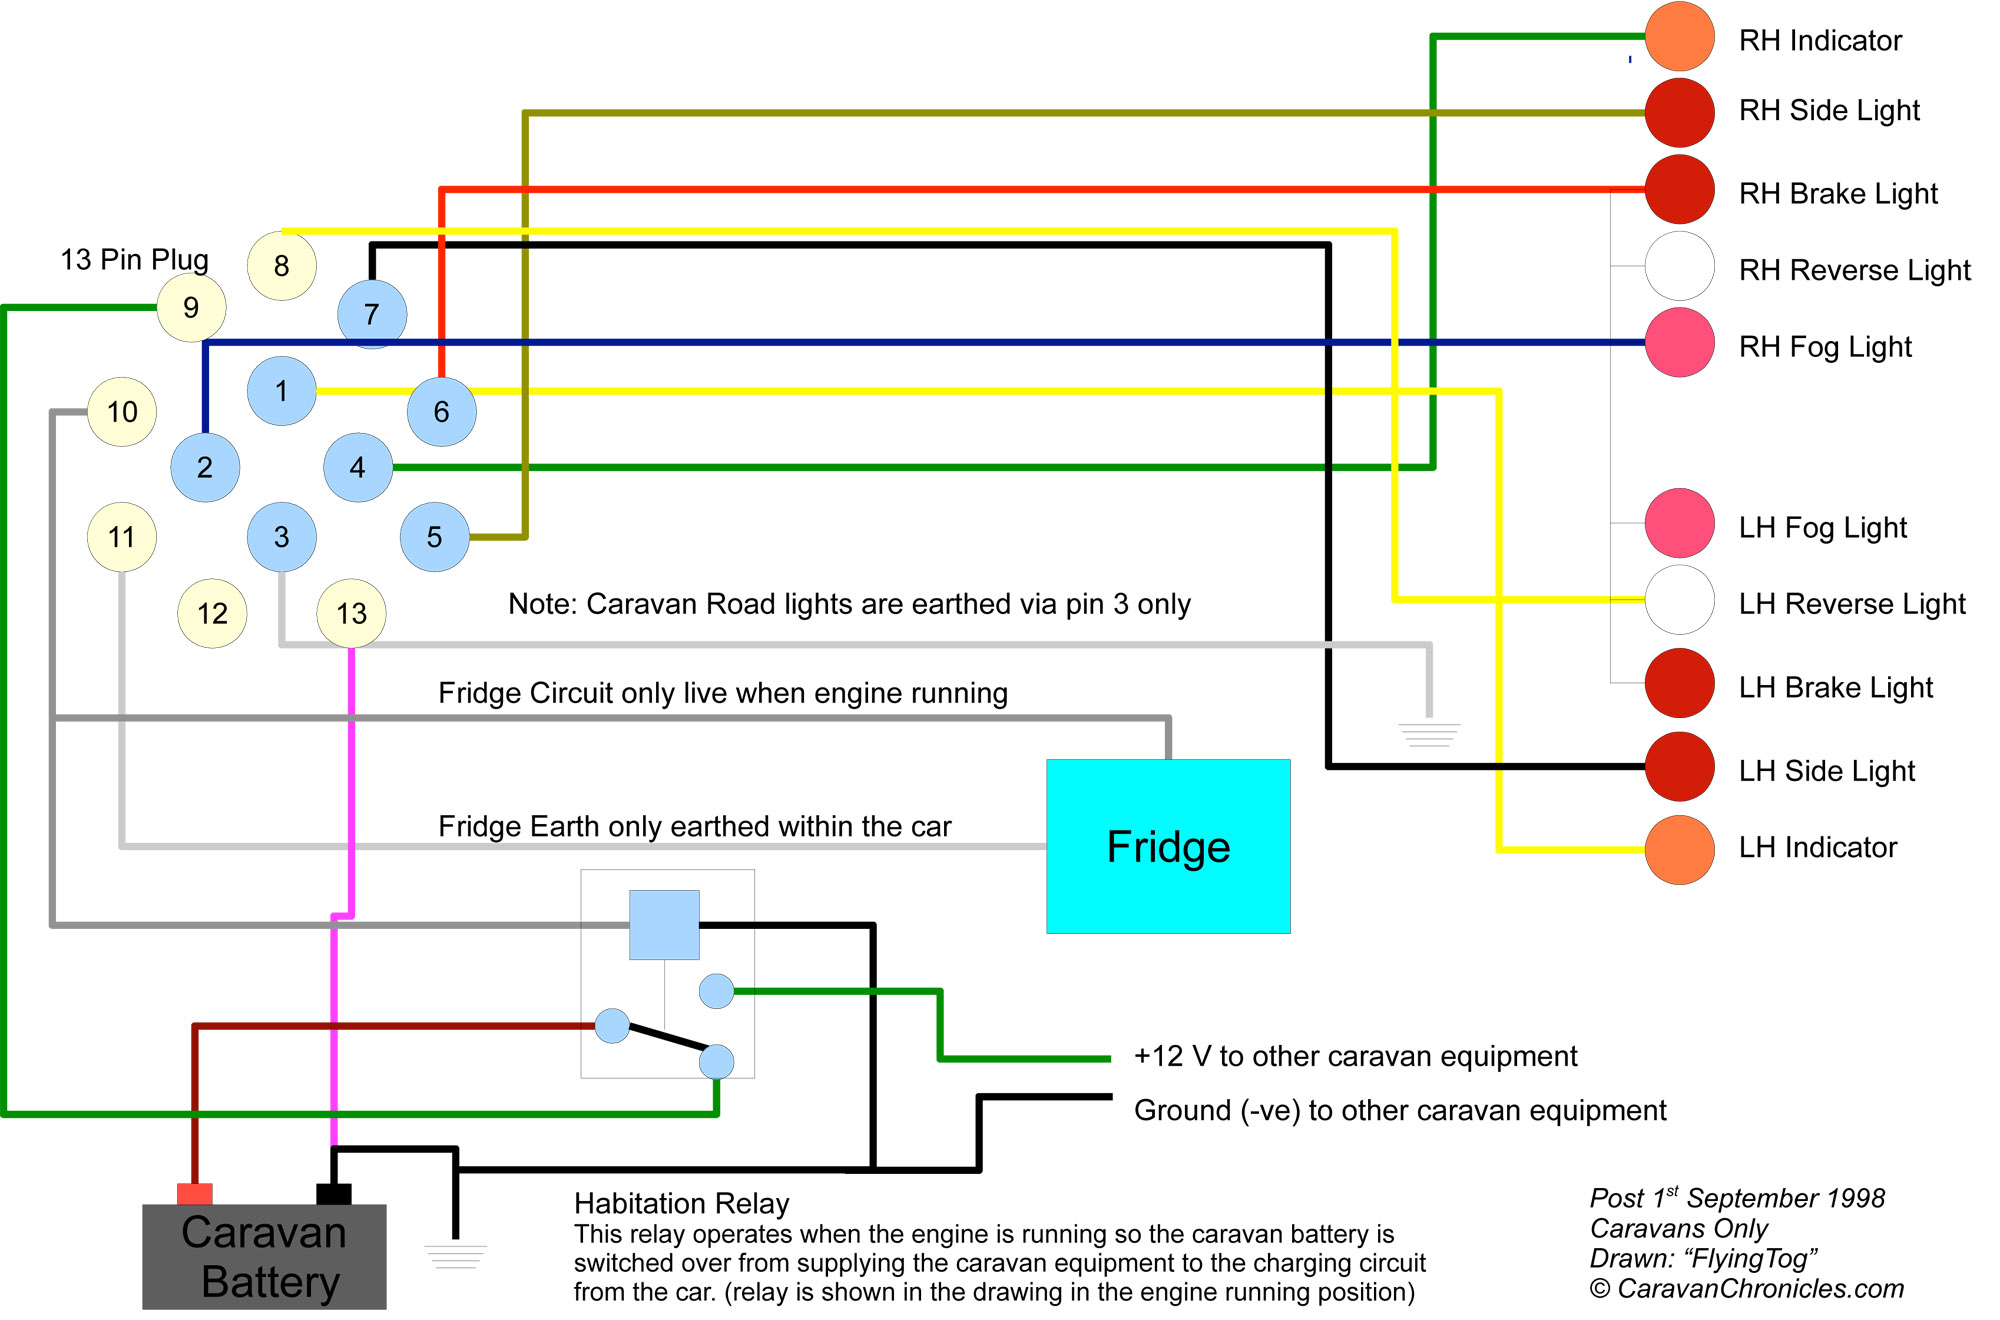 caravan 13 pin socket wiring diagram labeled of a motor car understanding and tow electrics